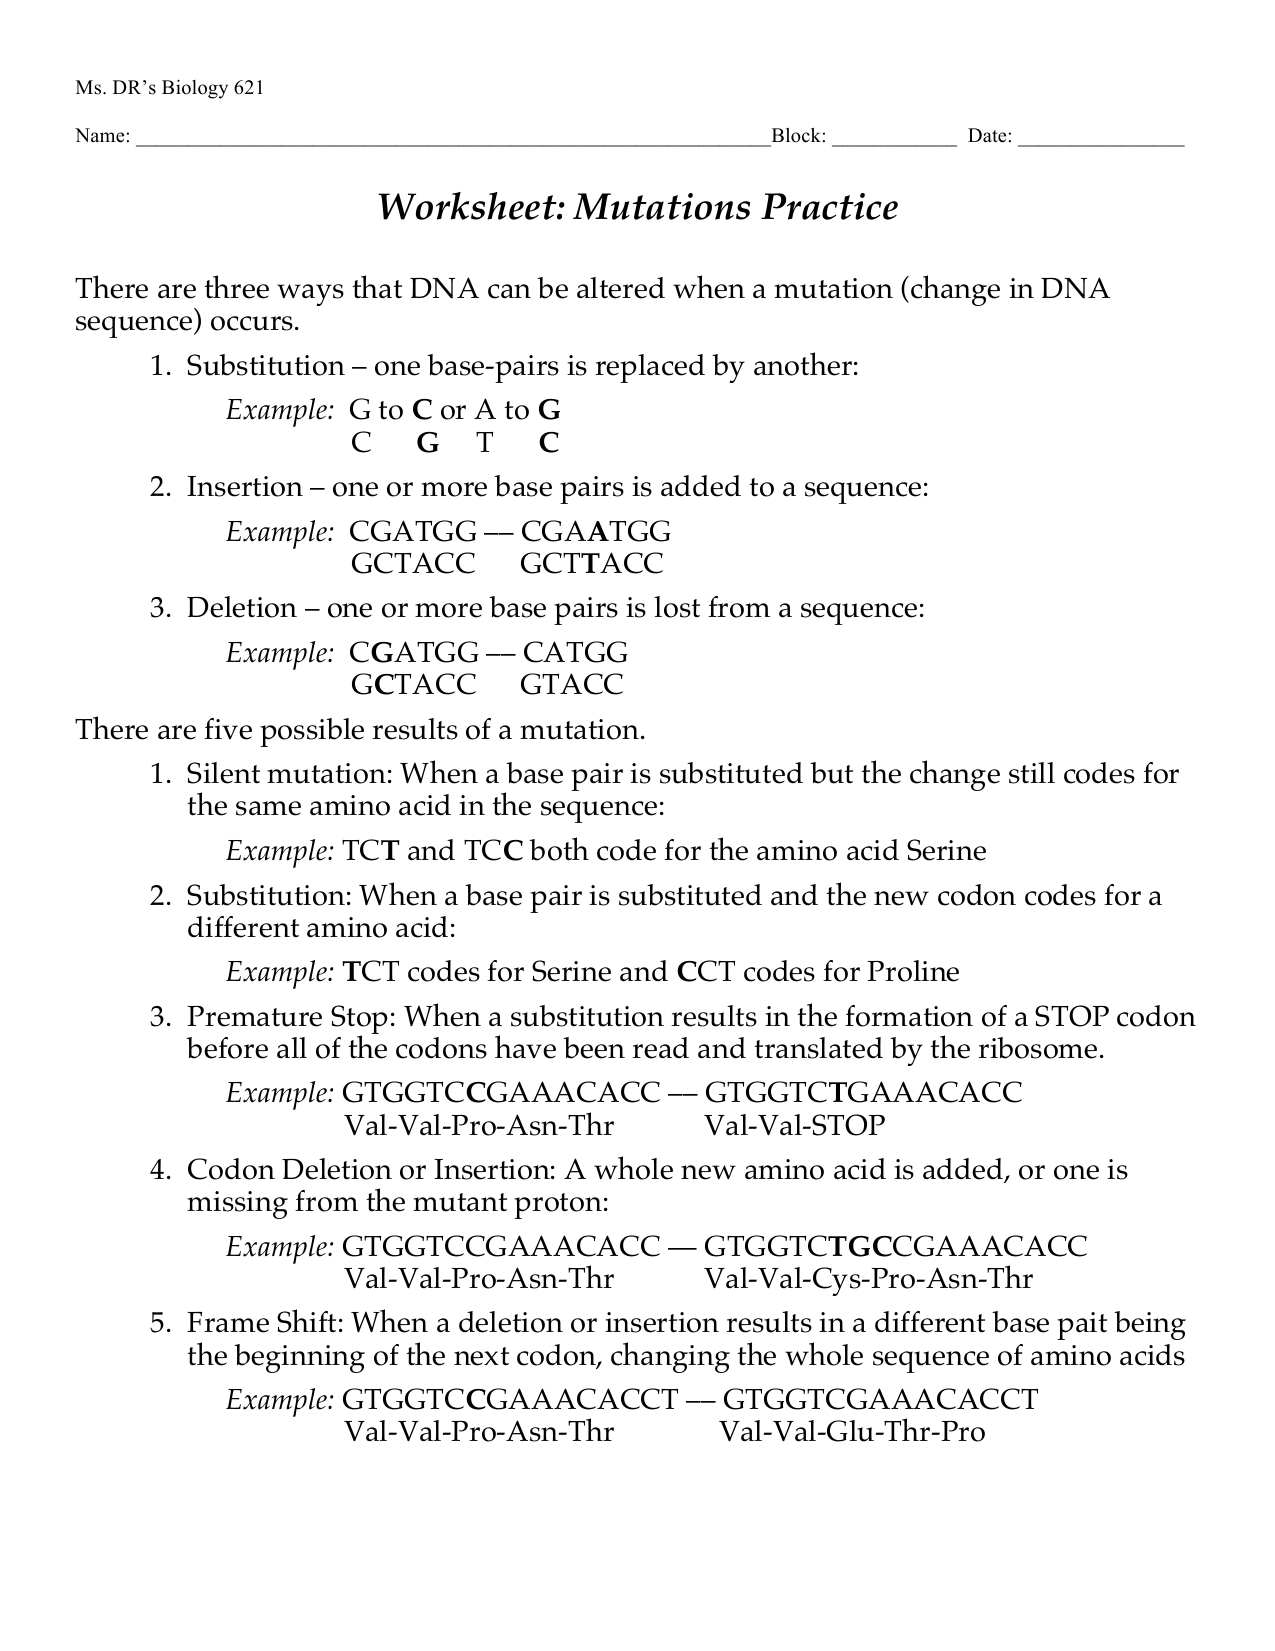 Mutations Worksheet